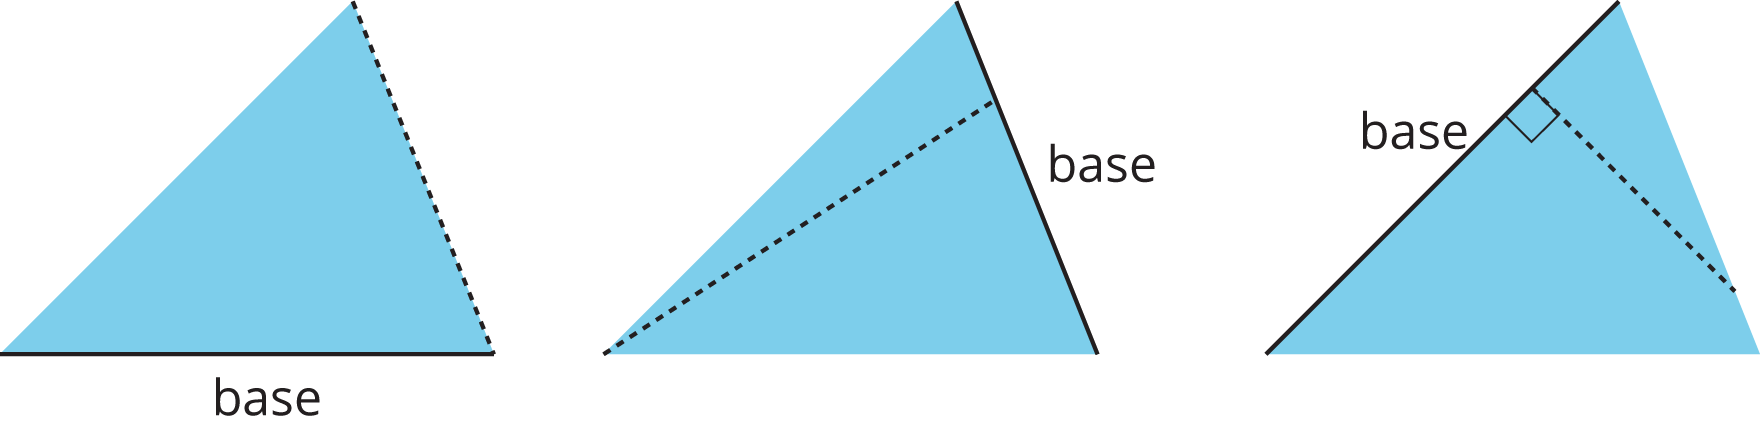 Three copies of a triangle. Each copy has a different side labeled base and a line from the base that is not the height.